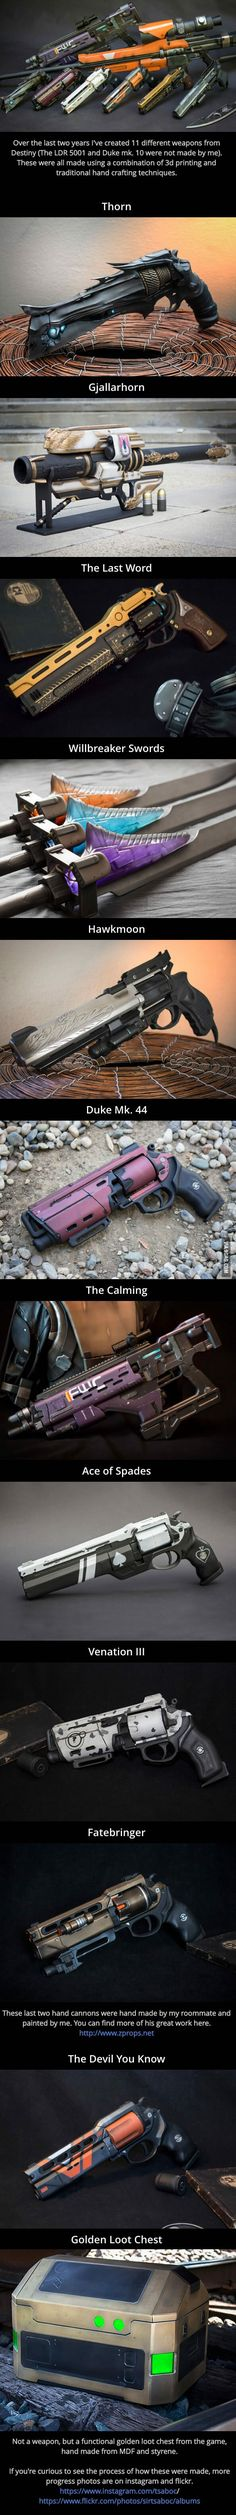 11 real-life weapons from Destiny by Eric Newgard Cosplay Weapons, Sci Fi Weapons, Concept Weapons, Weapons Guns, Fantasy Weapons, Armor Concept, Cyberpunk, Destiny Game, Destiny Bungie